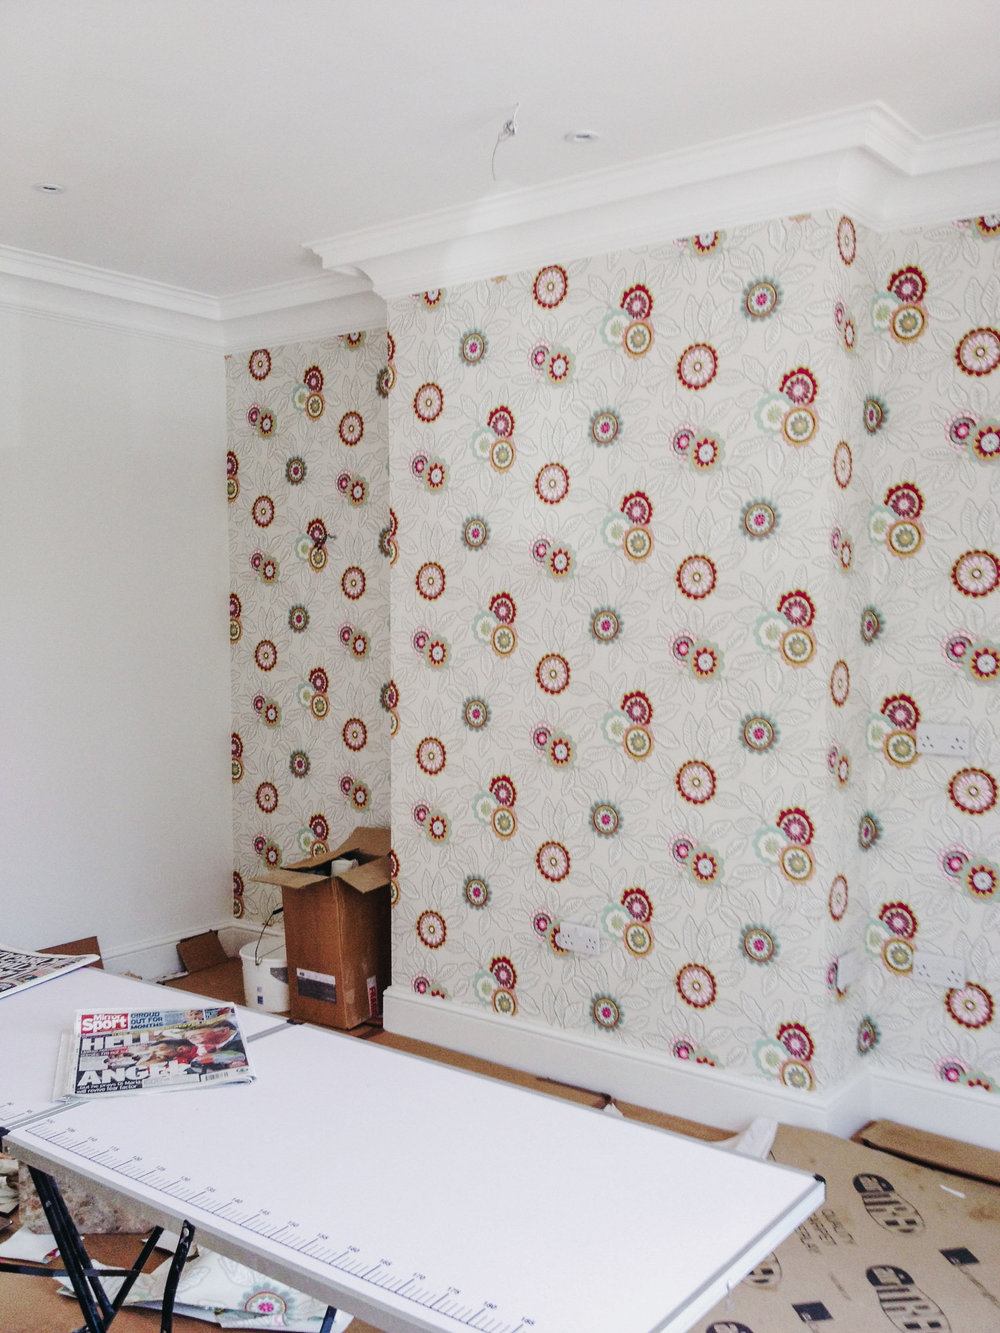 Wallpapering in London